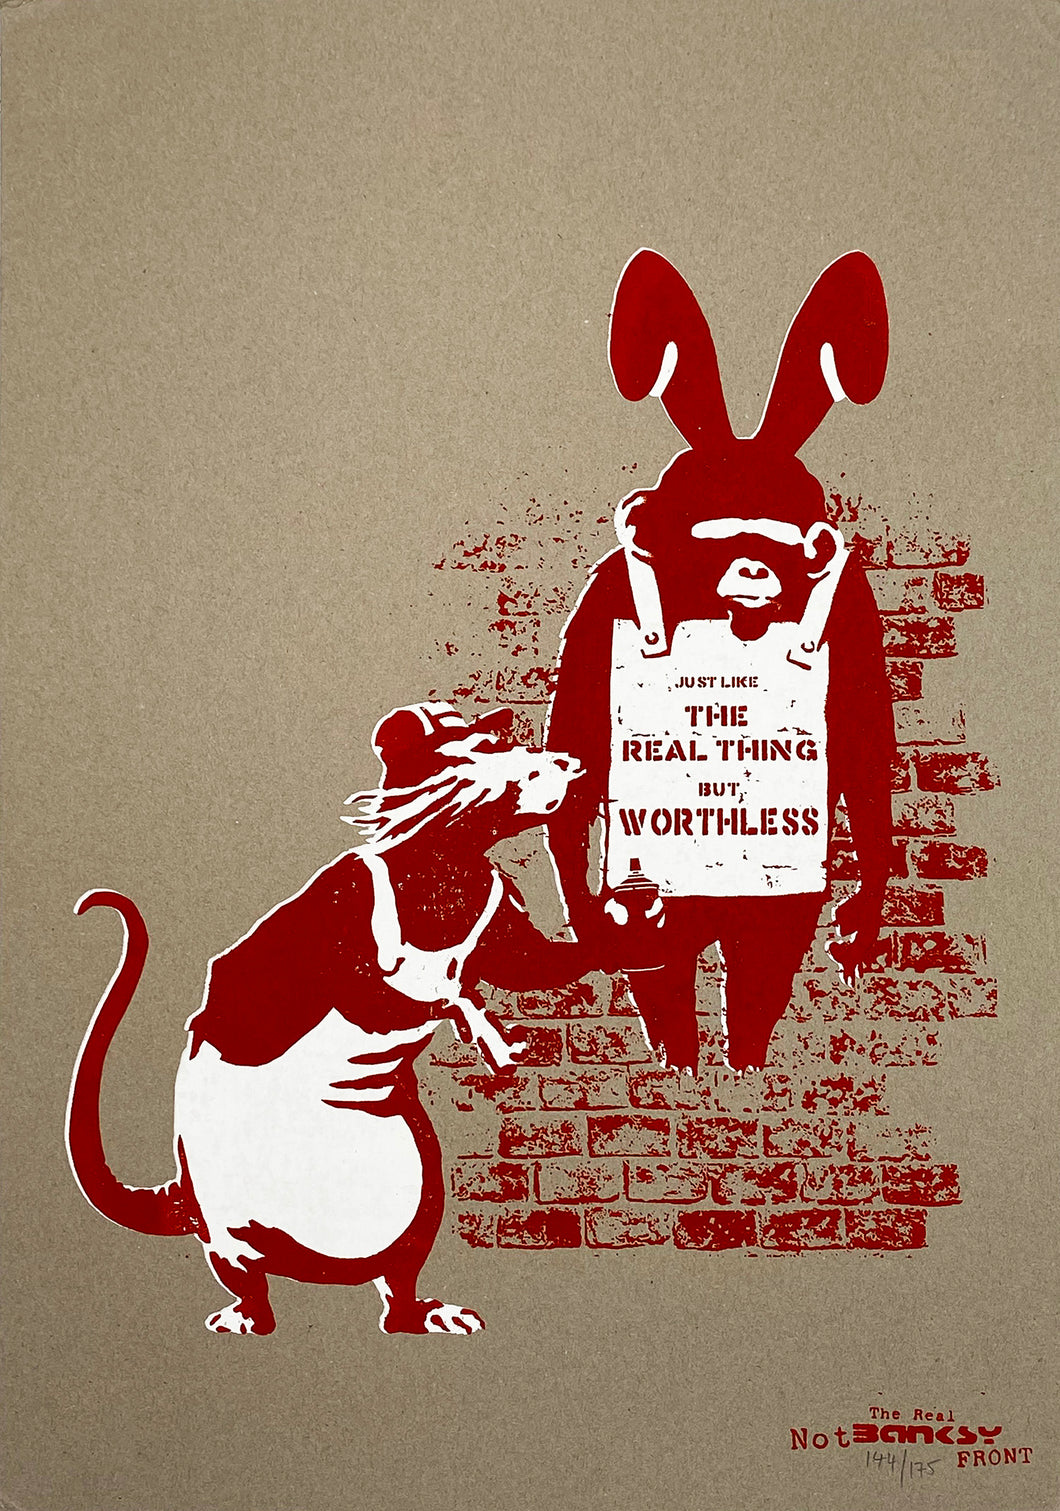 THE REAL NOT BANKSY FRONT 'Like the Real Thing but Worthless' Screen Print (2) - Signari Gallery